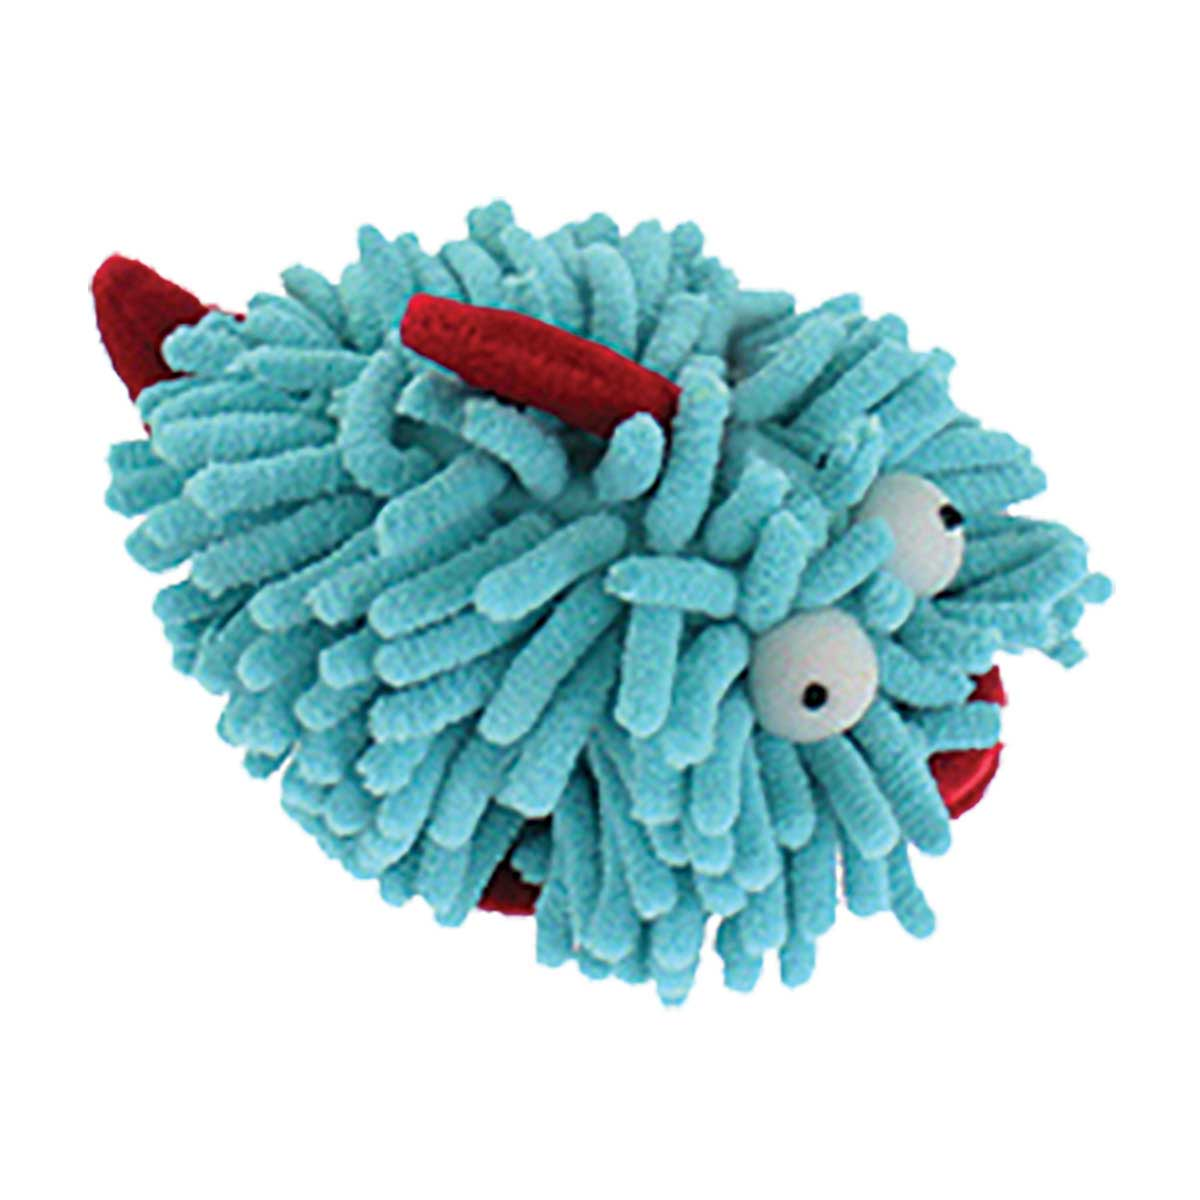 Multipet Sea Shammies Fish Dog Toy 6 inch